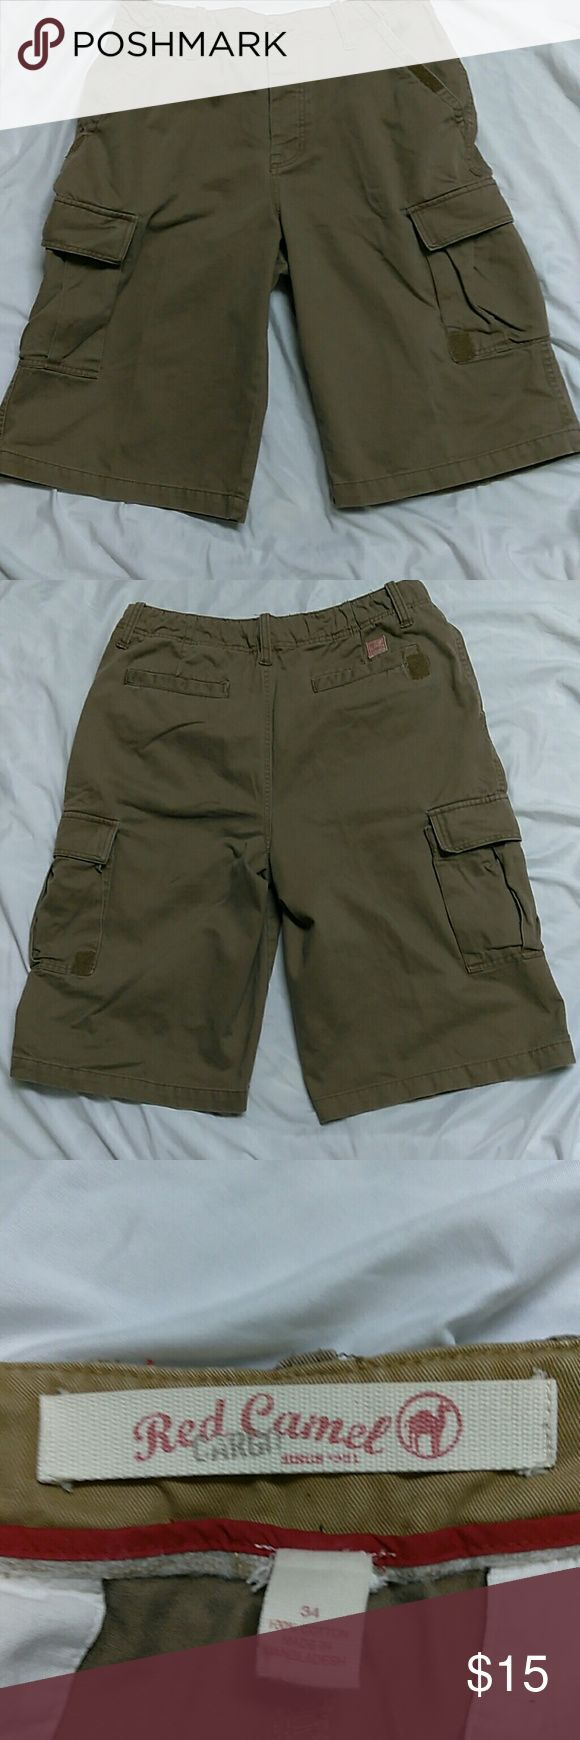 Red Camel Cargo Men's Shorts Size 34 Red Camel Cargo Men's Shorts / Size 34/ Brown / like new. Red Camel Shorts Cargo